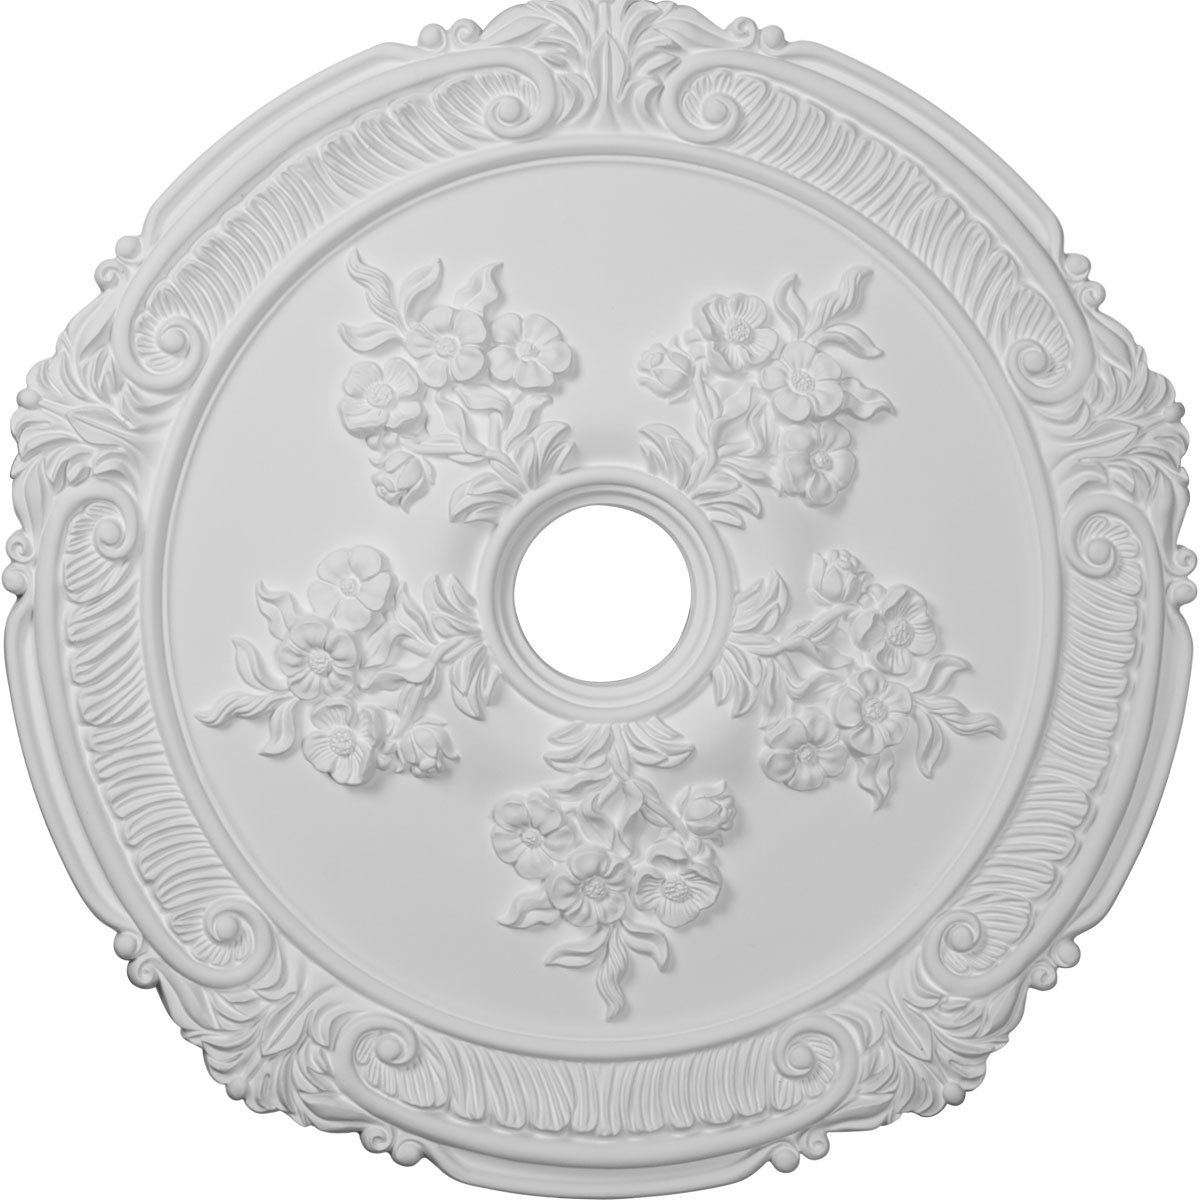 Ekena Millwork CM26AT 26-Inch OD Attica with Rose Ceiling Medallion